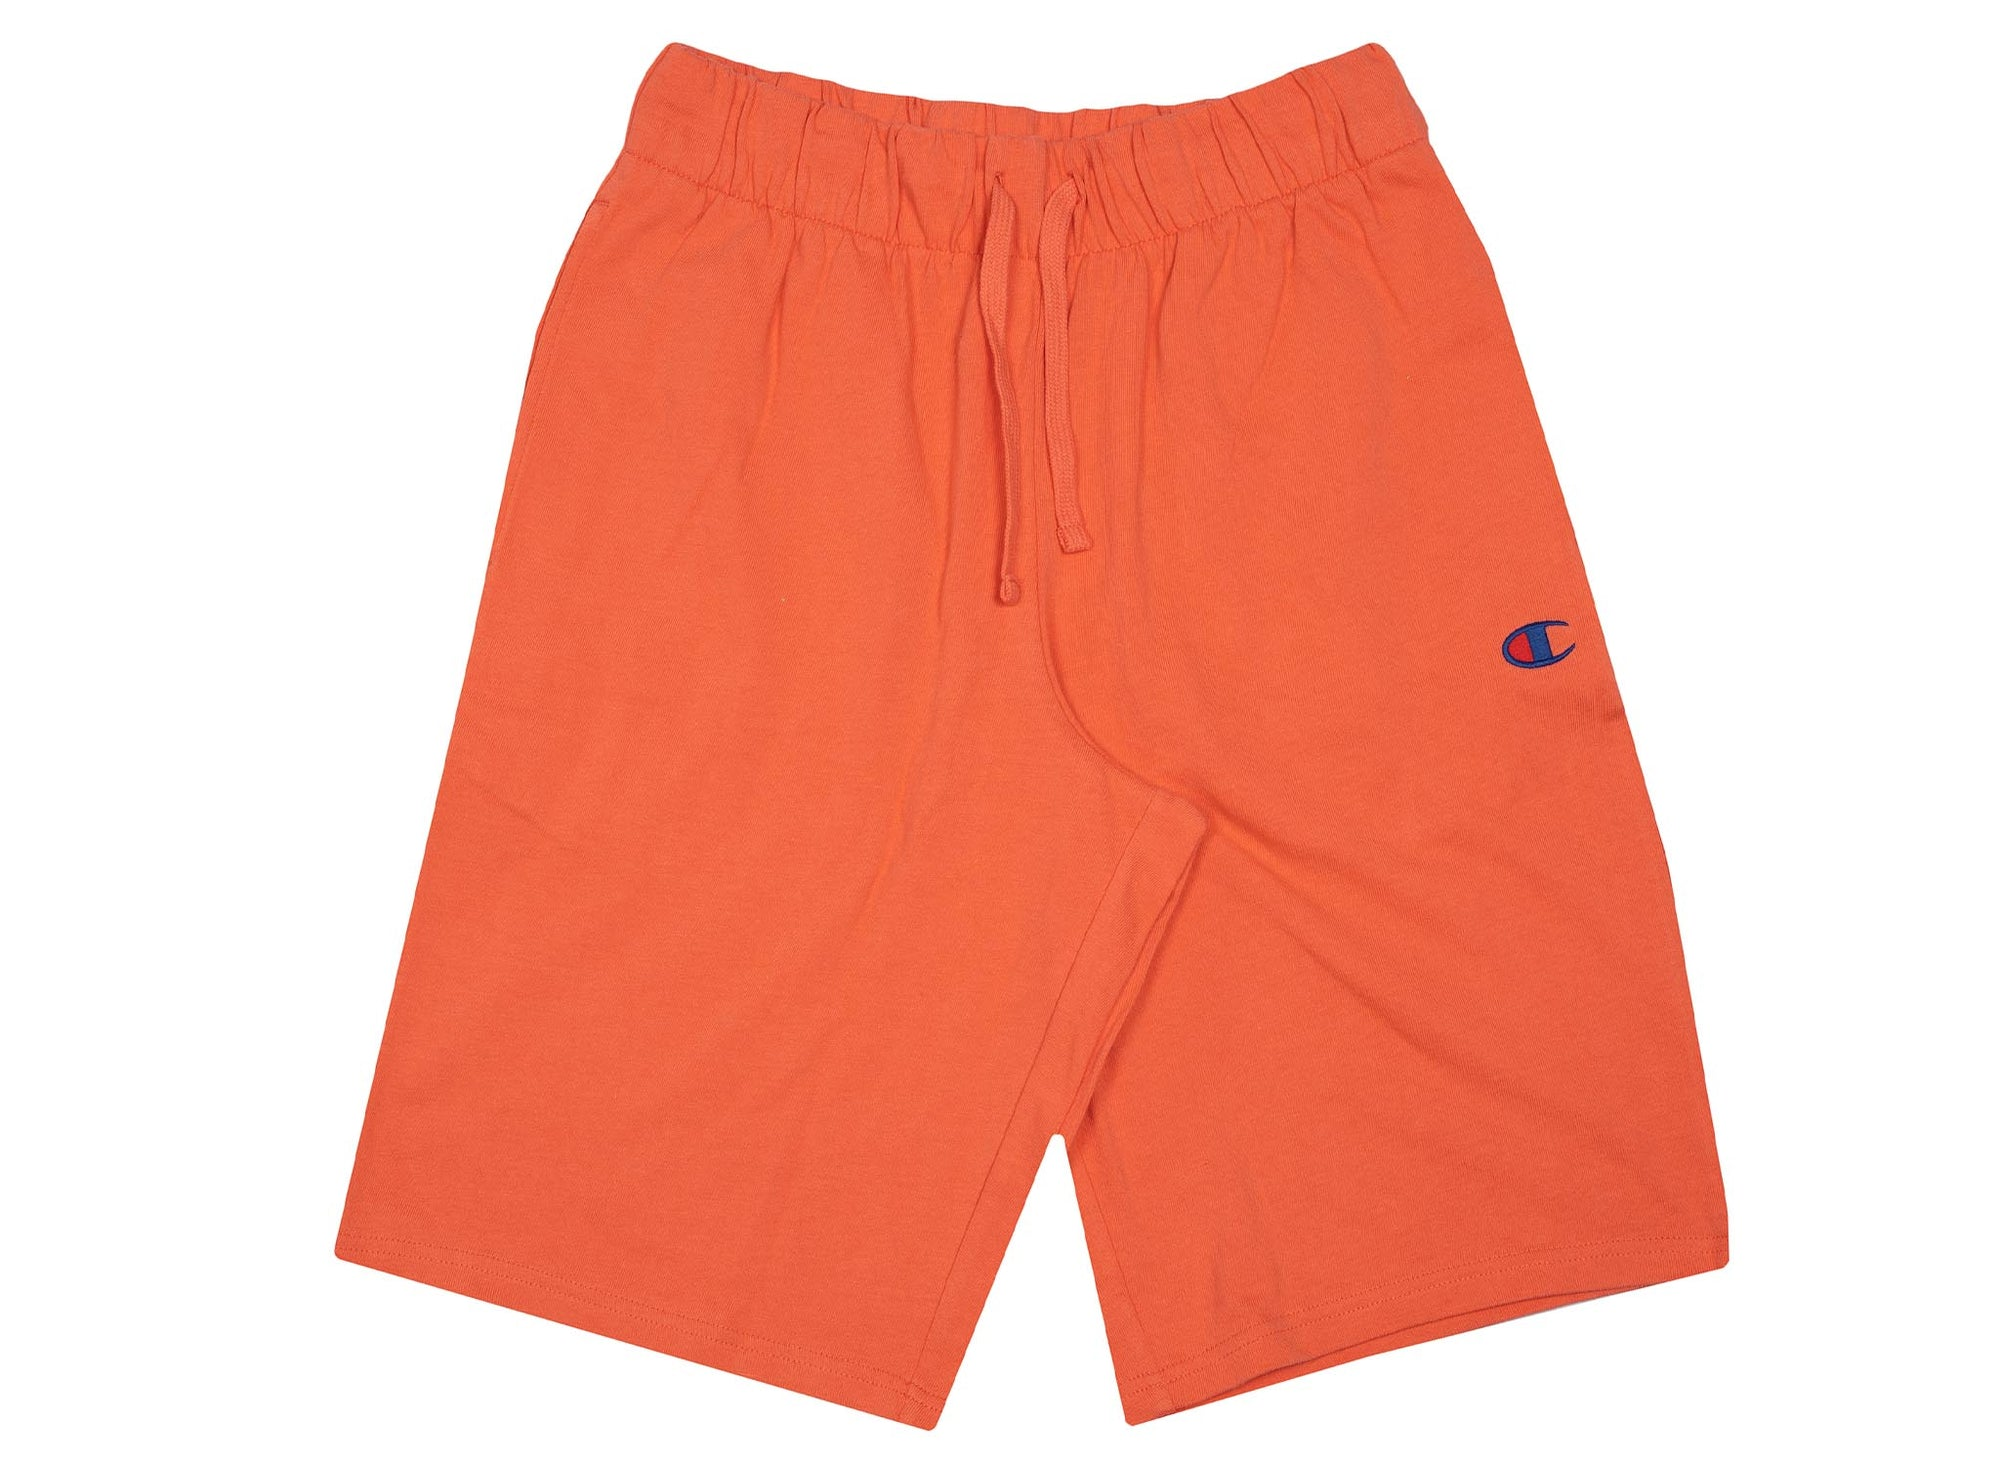 Champion Men's Jersey Jam Shorts - Groovy Papaya